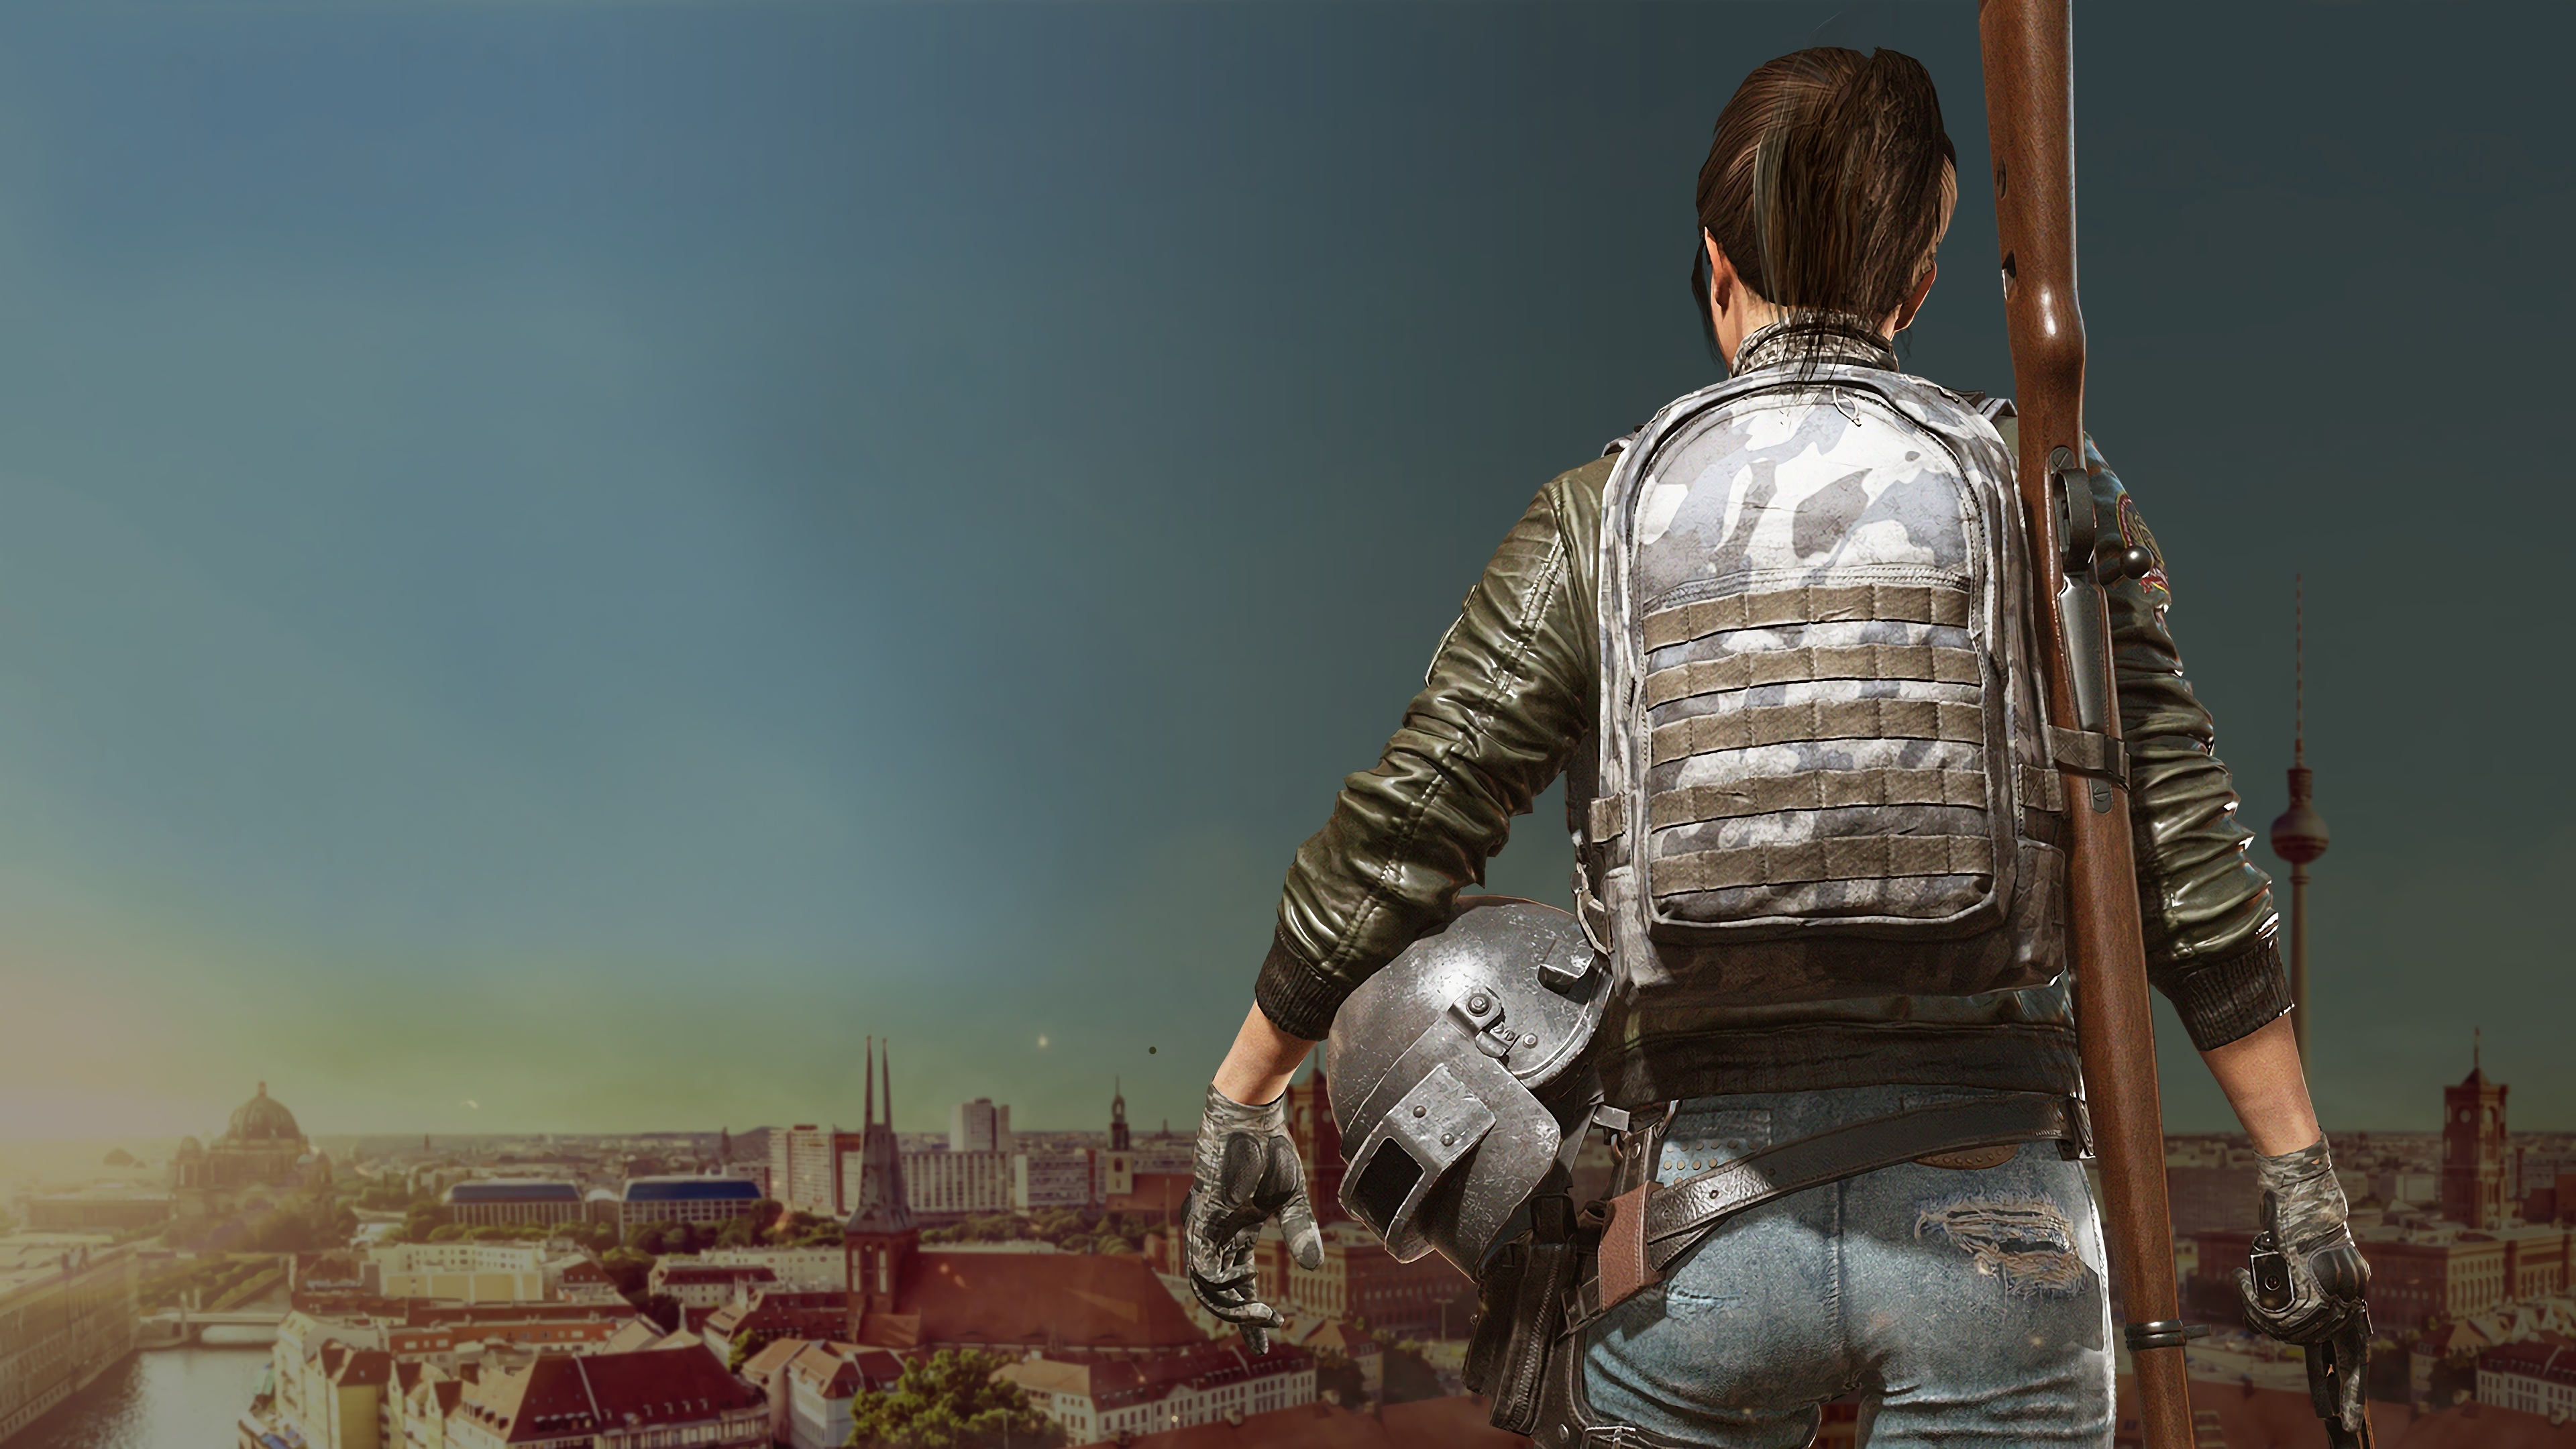 Pubg Wallpaper 4k: Game Girl Pubg 4k, HD Games, 4k Wallpapers, Images